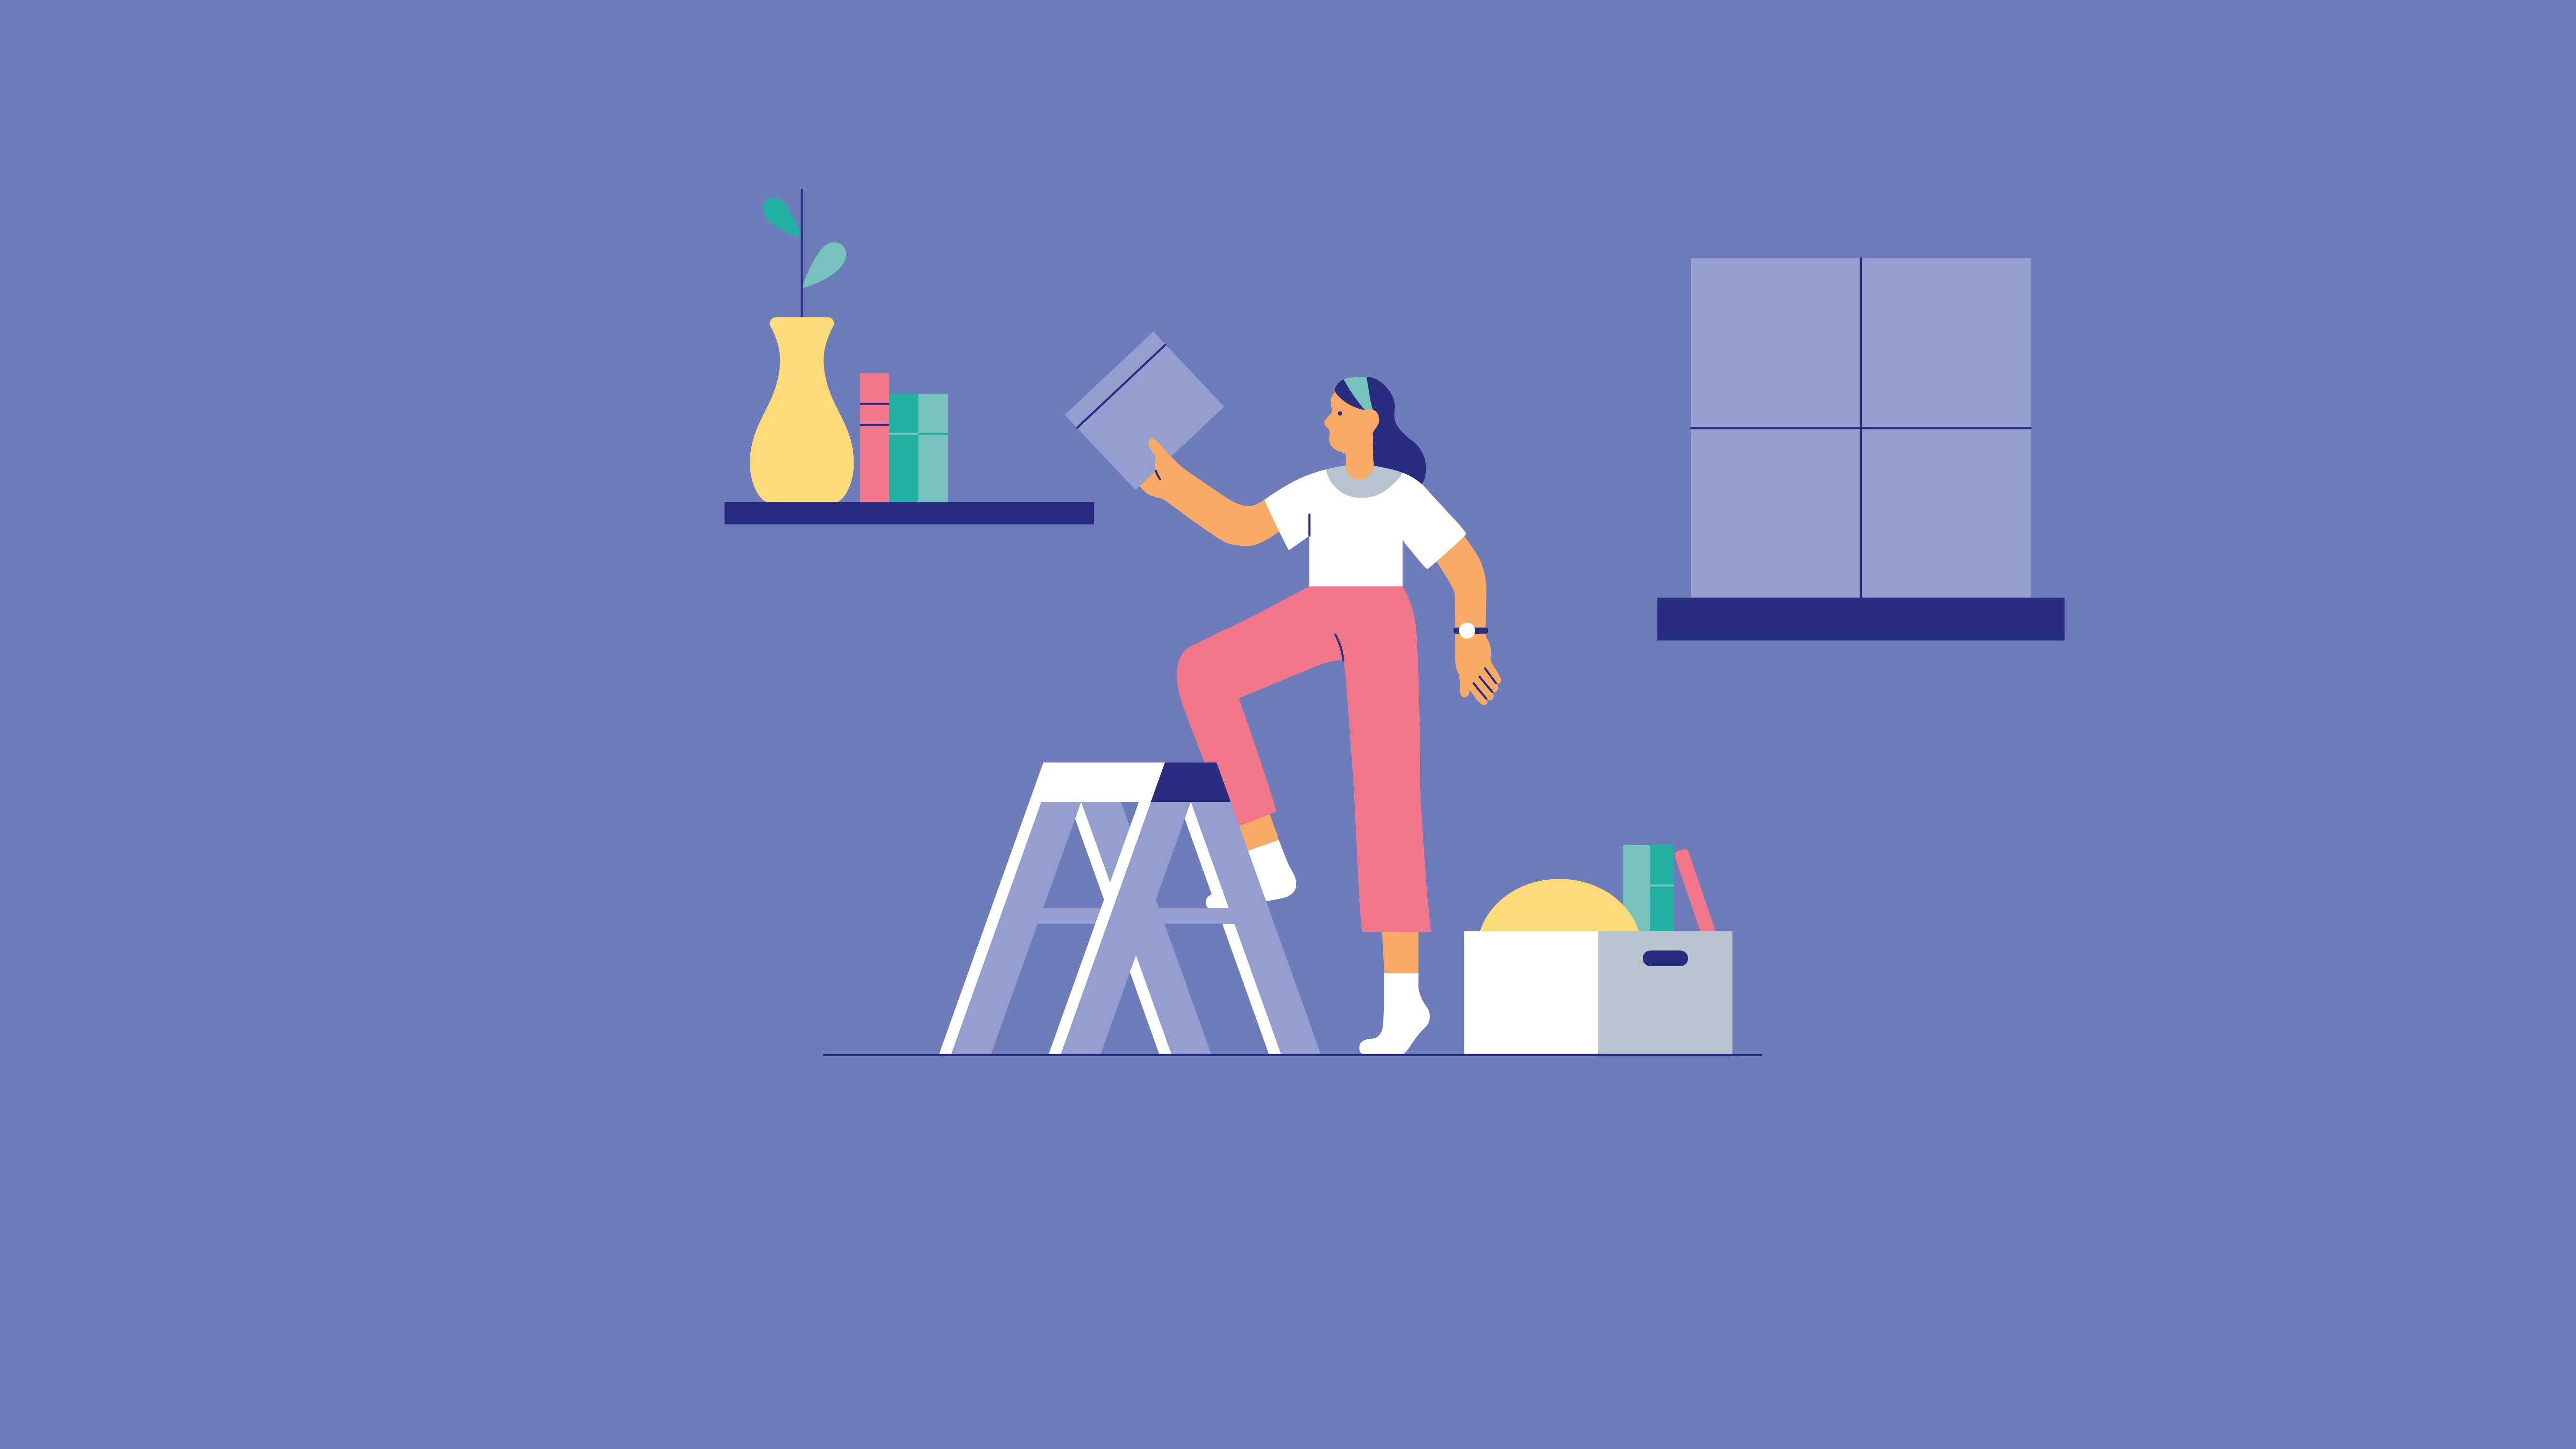 Illustration of a woman on a step ladder putting a book on a shelf. There is a box of other items on the floor. Visual is depicting the concept of organization and putting things away.